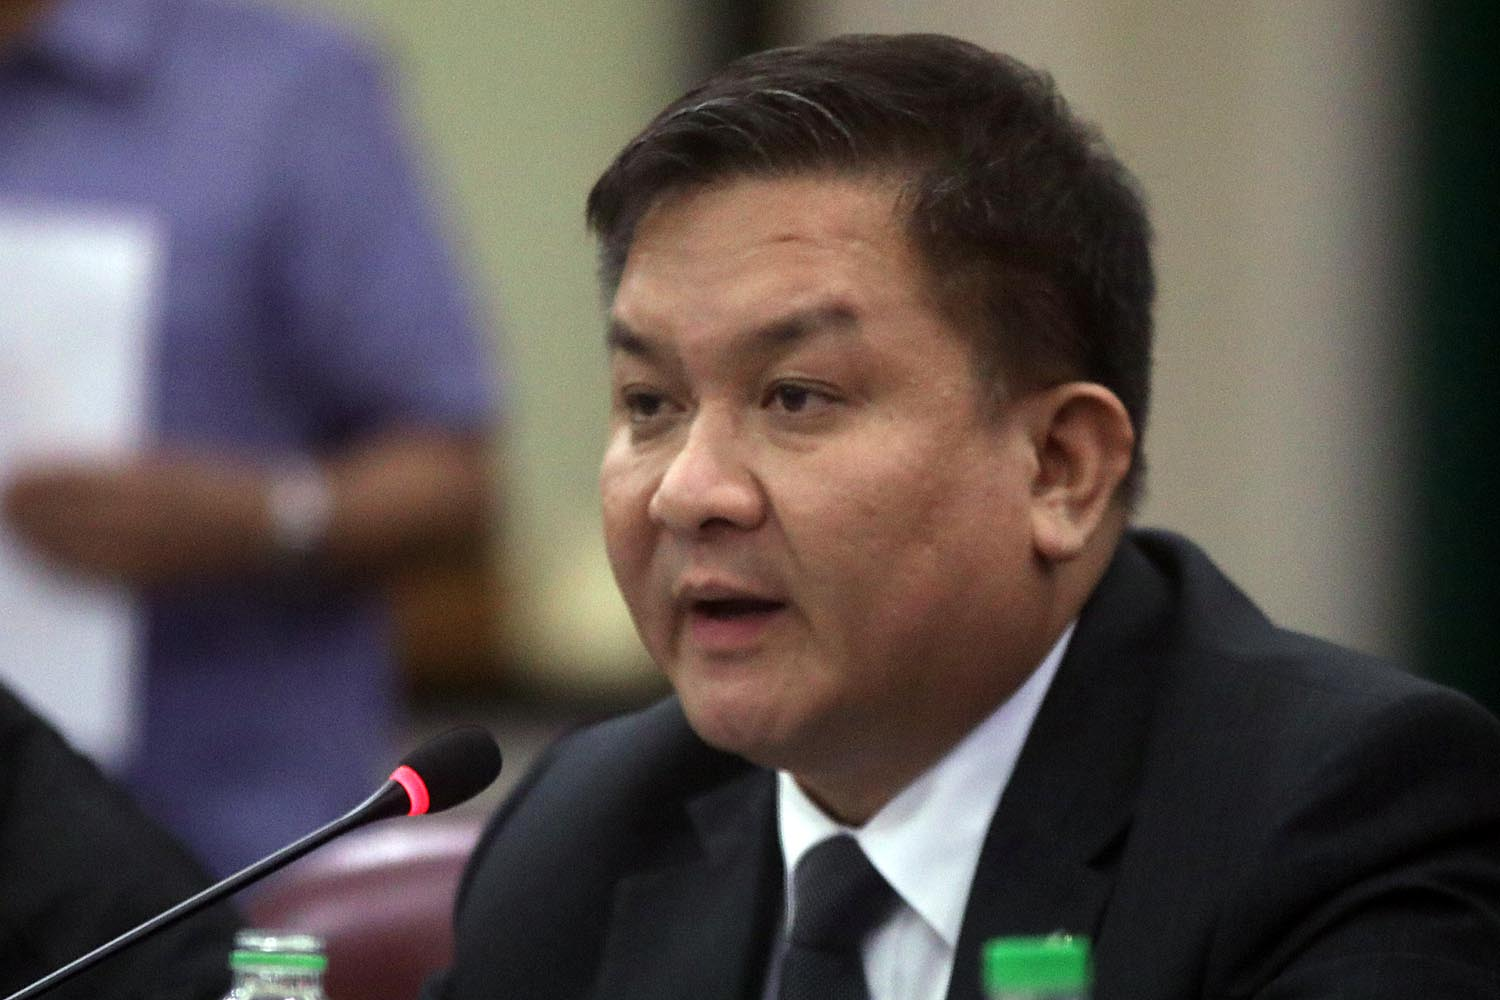 House panel OKs bill to lower age of criminal liability to 9 years old